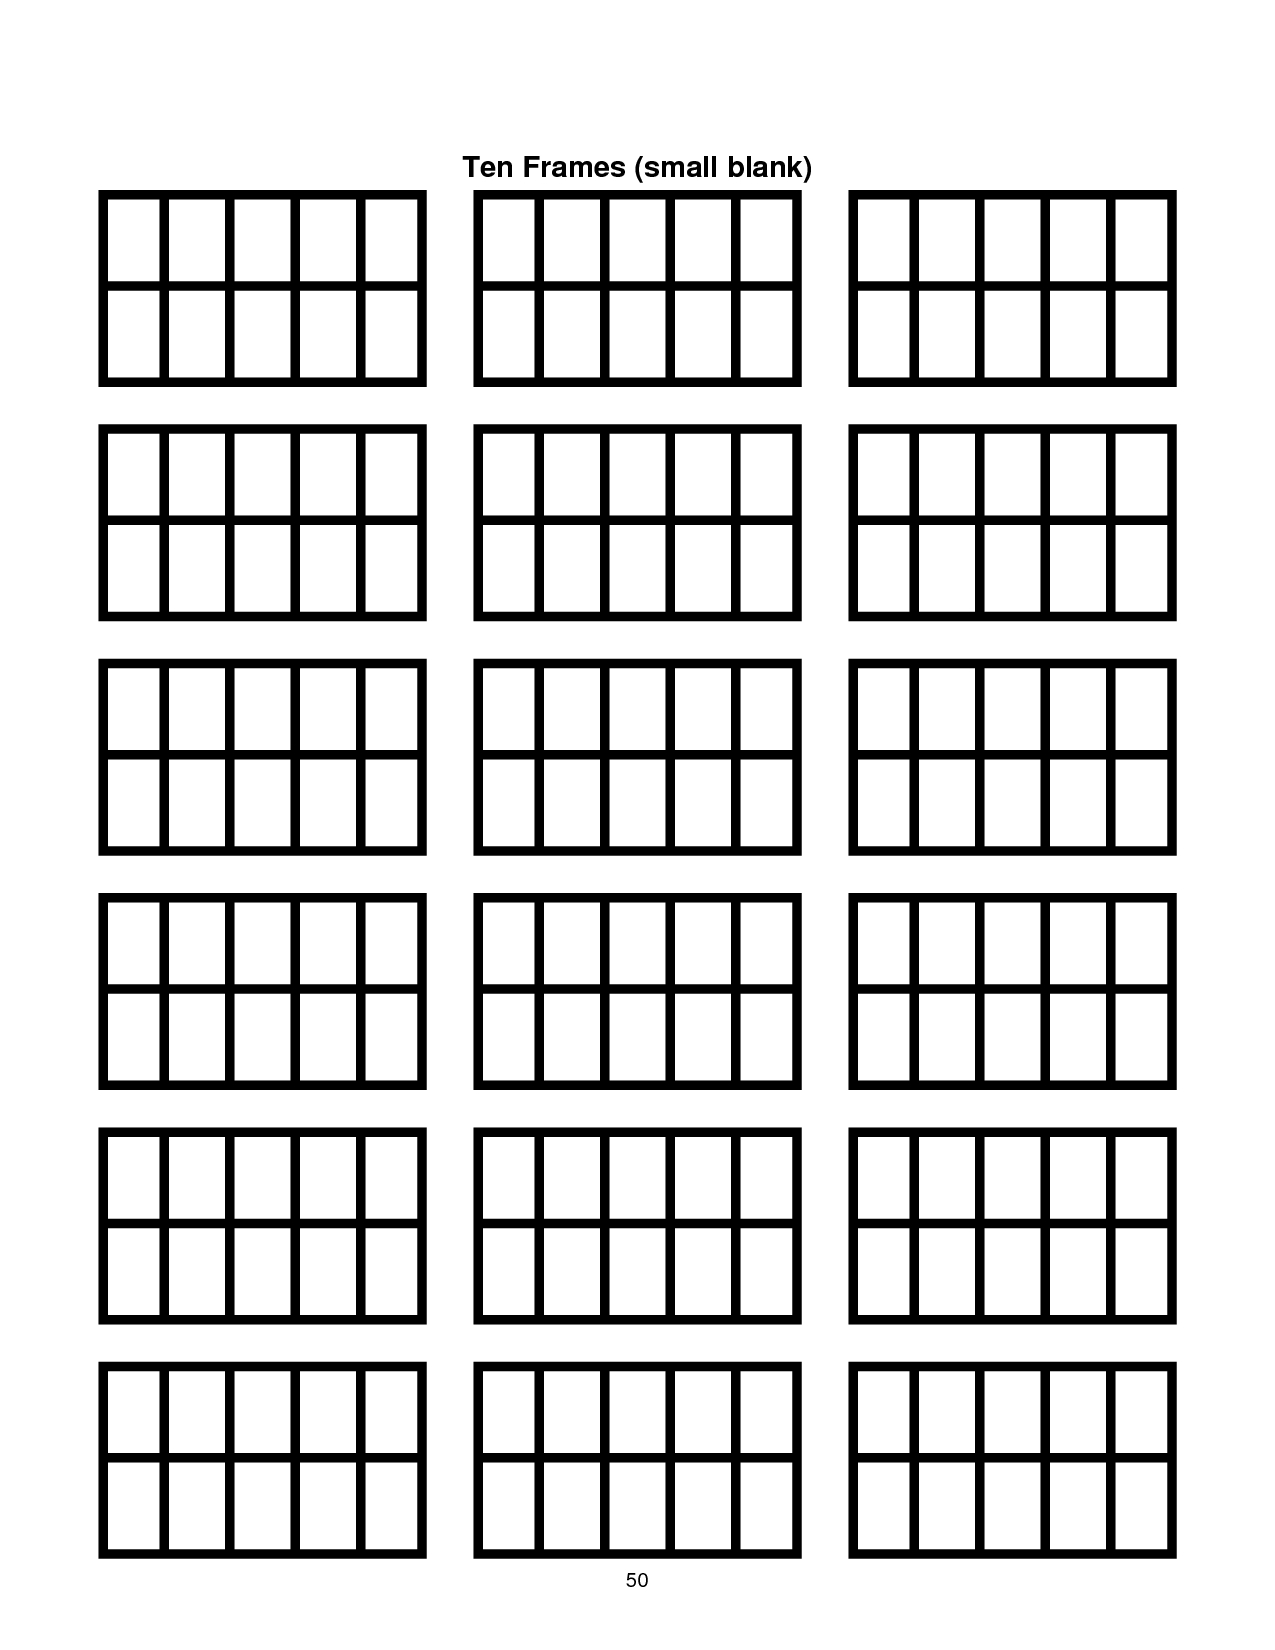 Ten Frame Template Printable | Document Sample | Classroom Ideas within Number Ten Template For First Grade